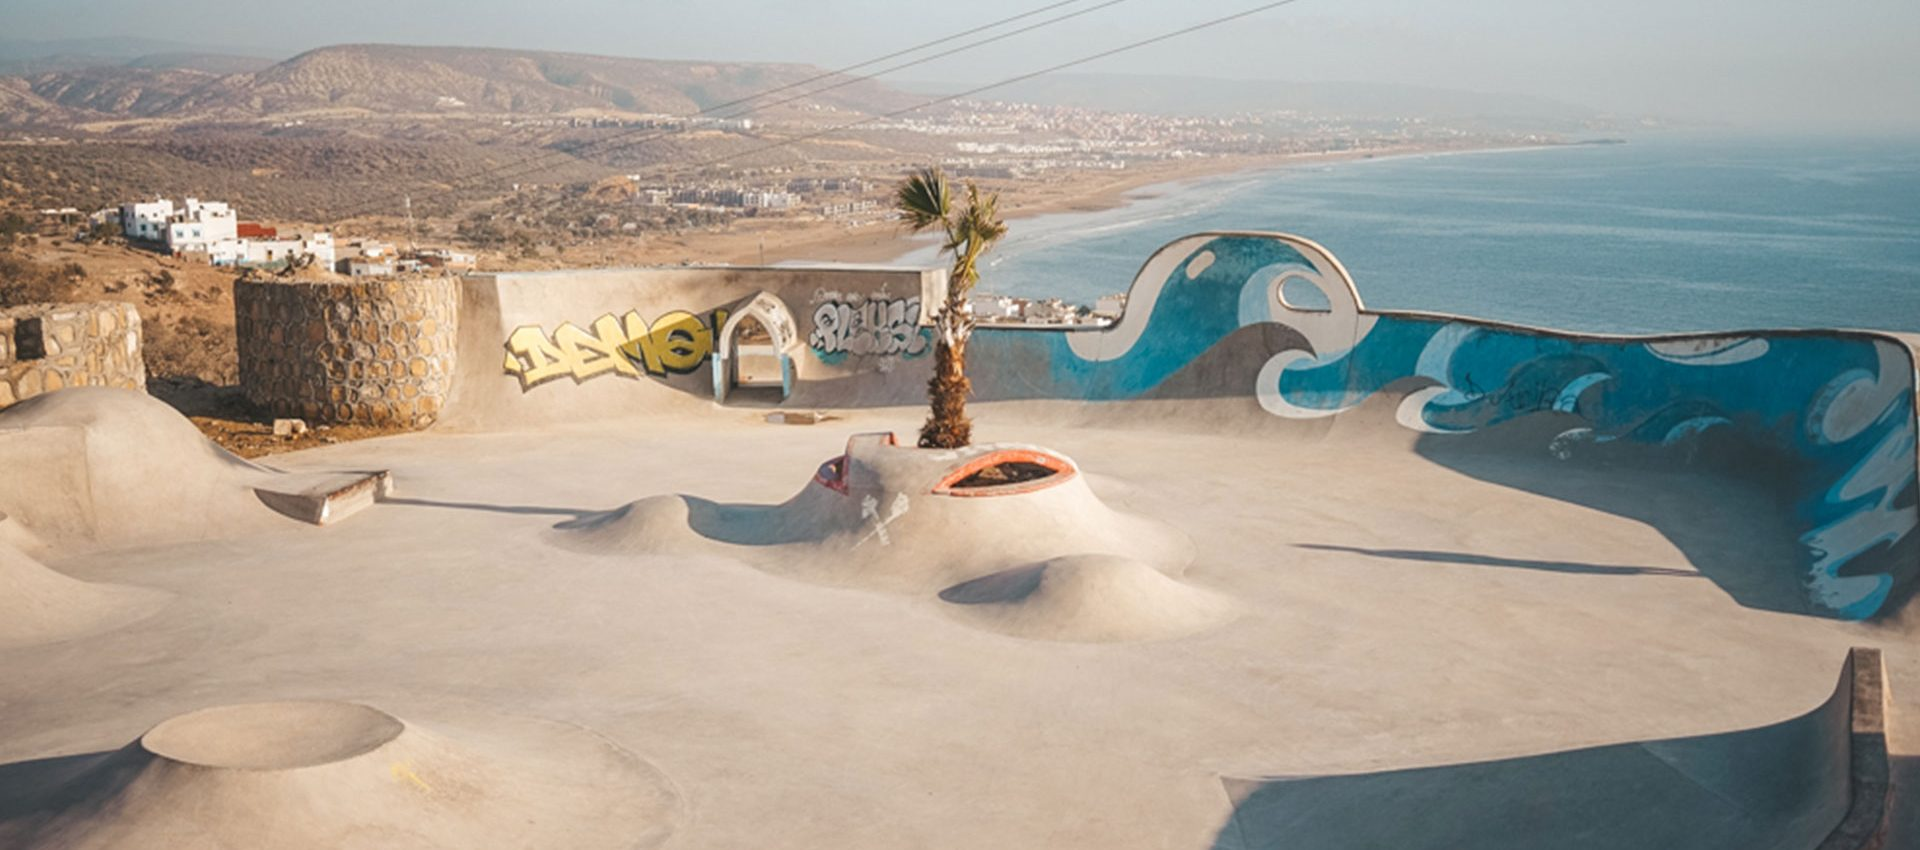 You can practice your surf skills inland, on the most amazing skate park overlooking the Ocean.